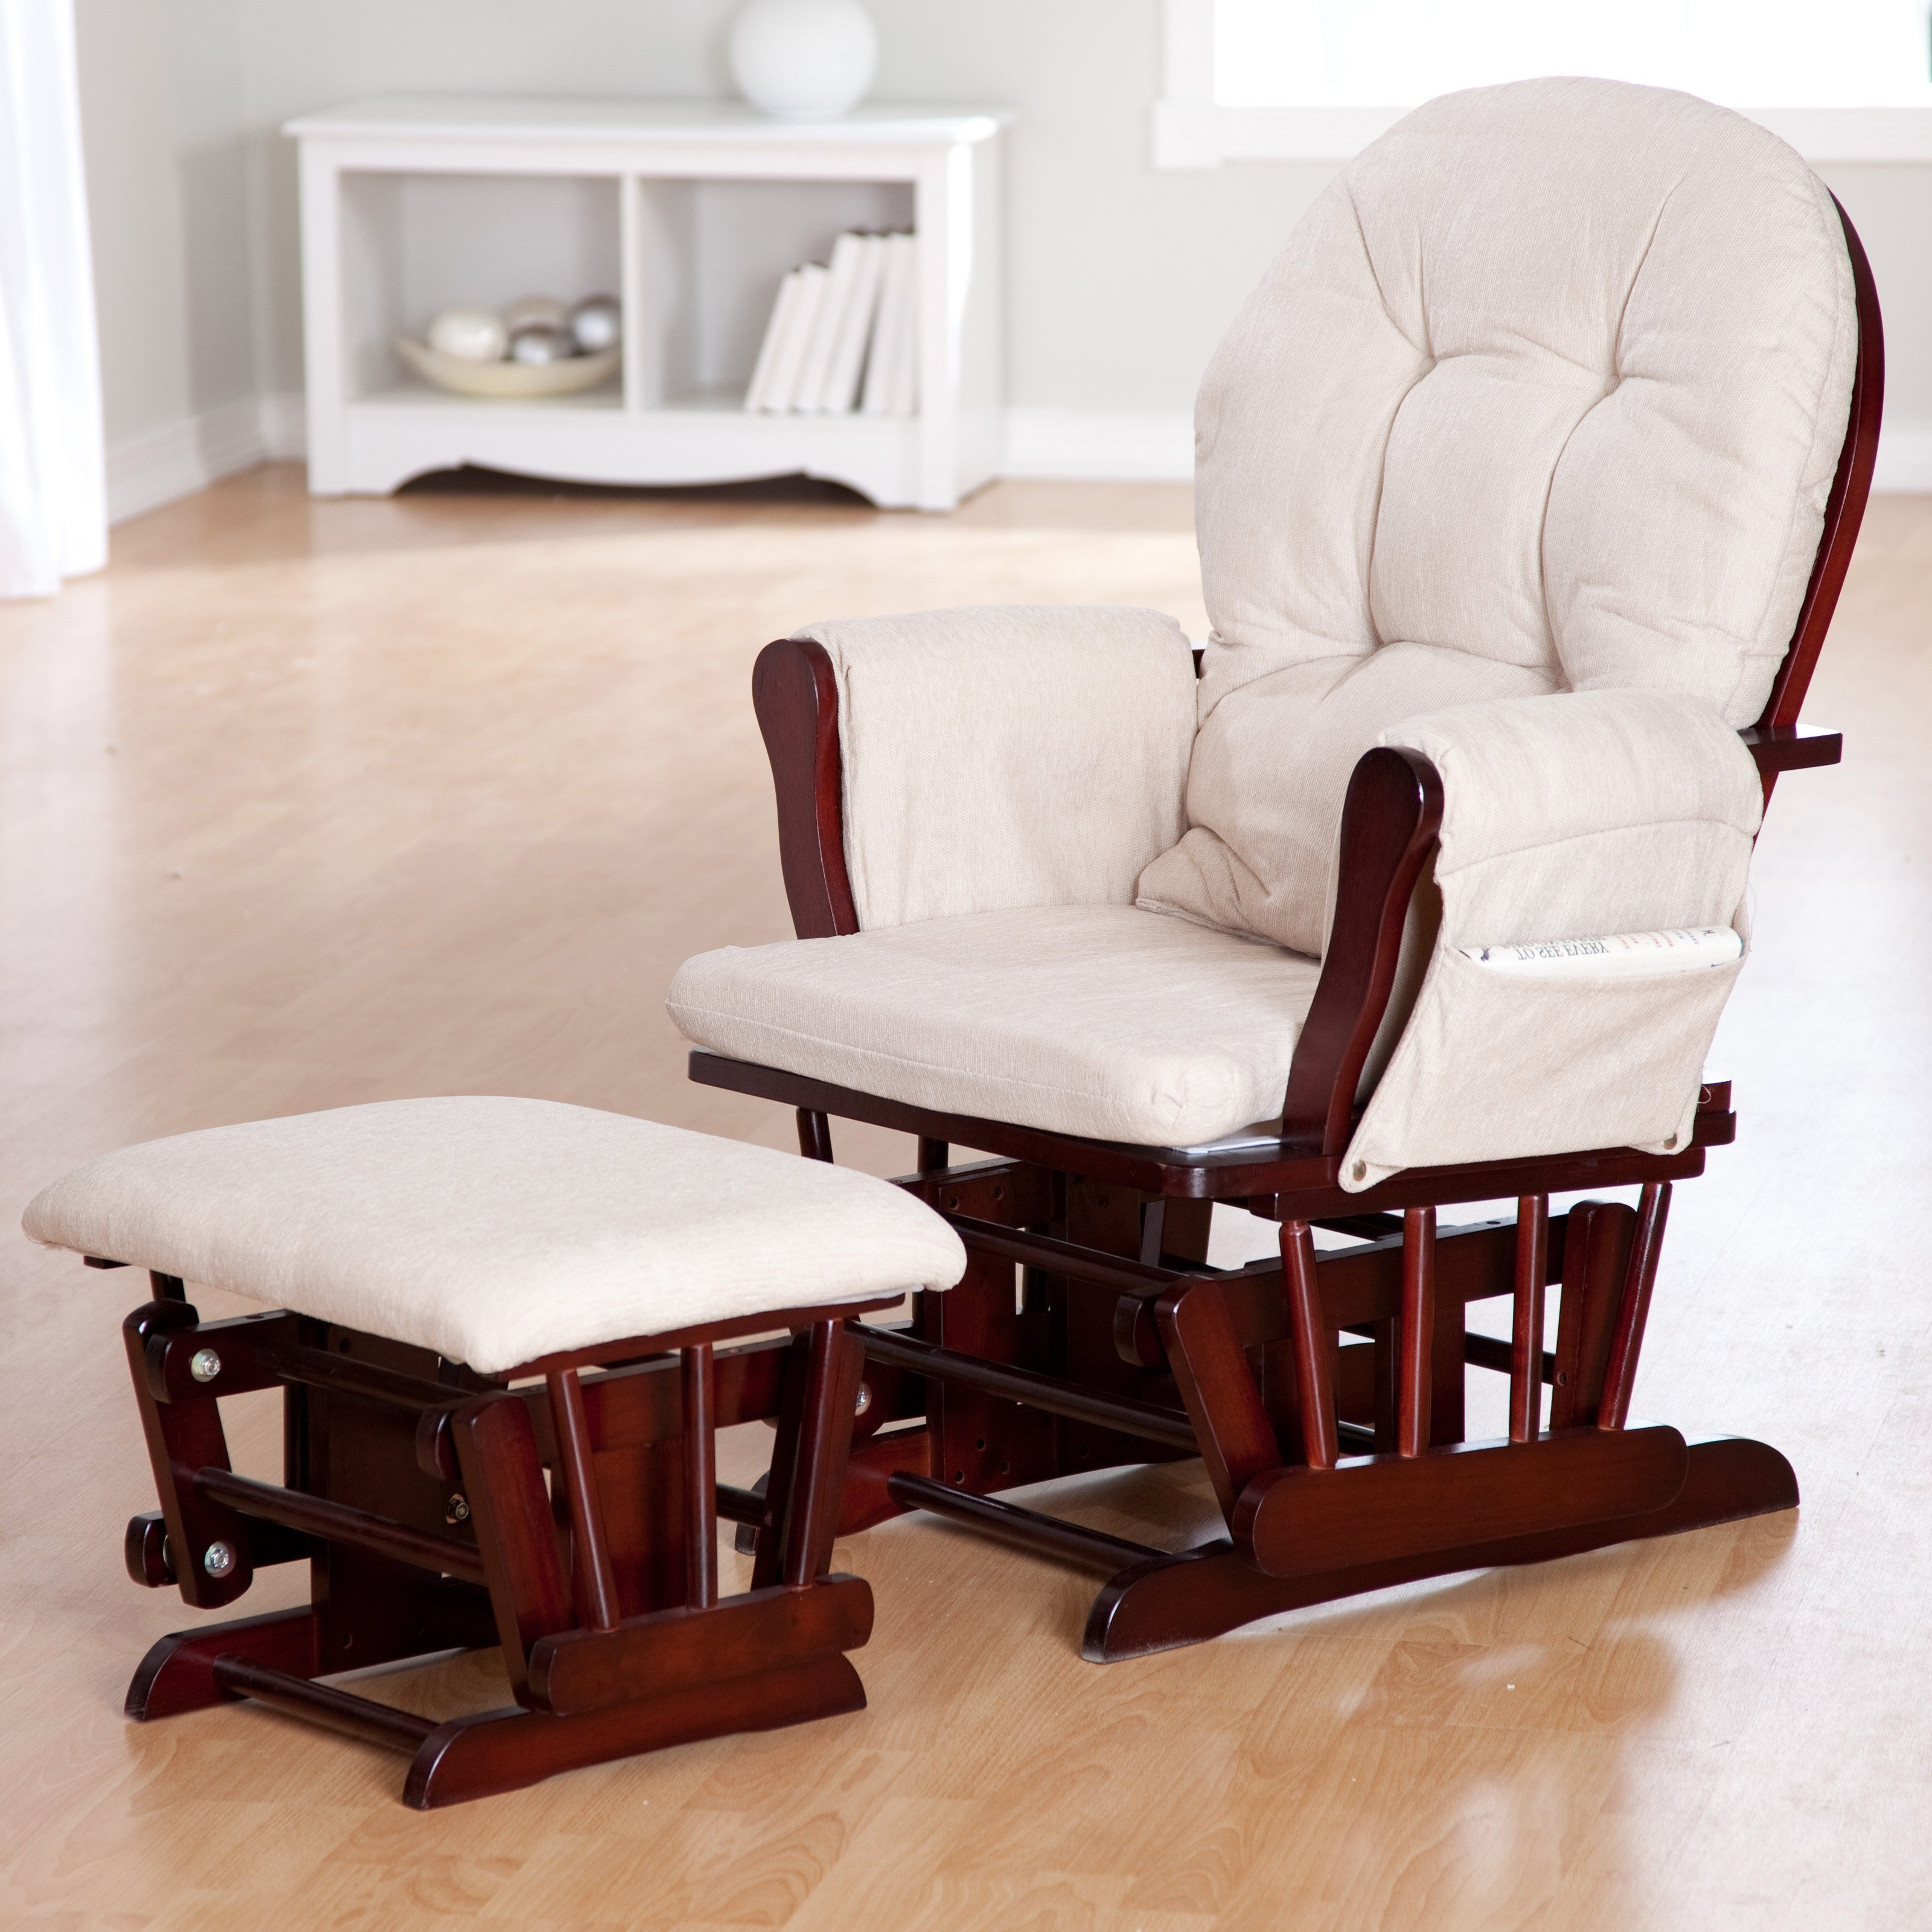 2017 Ottomans : Metal Rocking Chair Baby Nursery Recliners Best Chairs In Rocking Chairs For Baby Room (View 7 of 15)